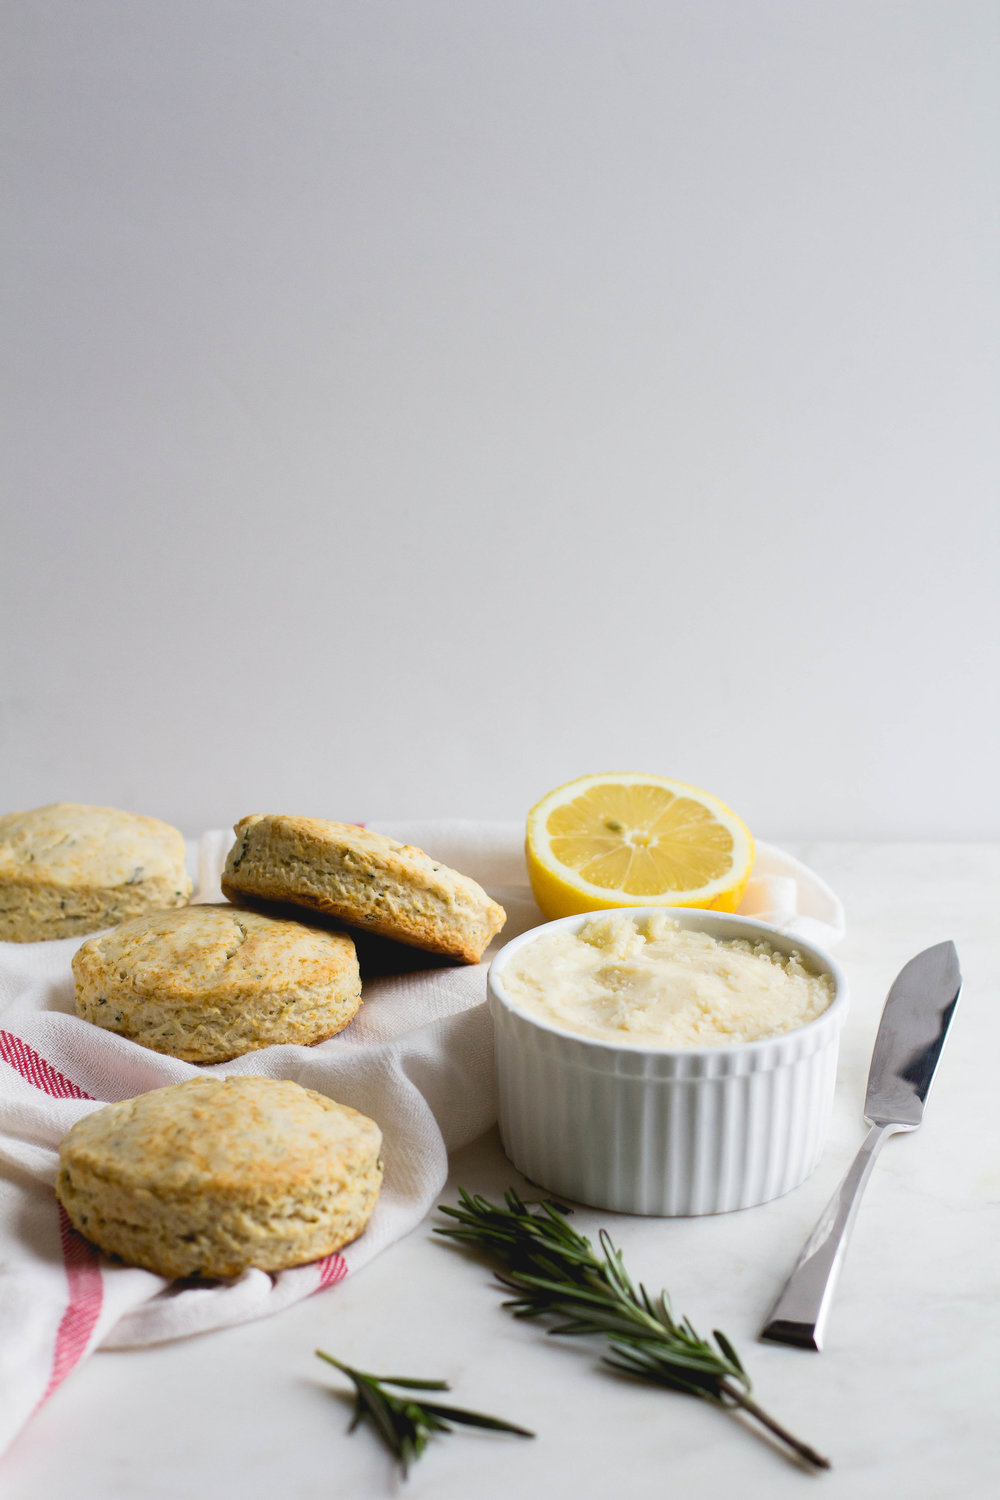 Lemon + Rosemary Biscuits with Lemon-Honey Butter | Sarah J. Hauser